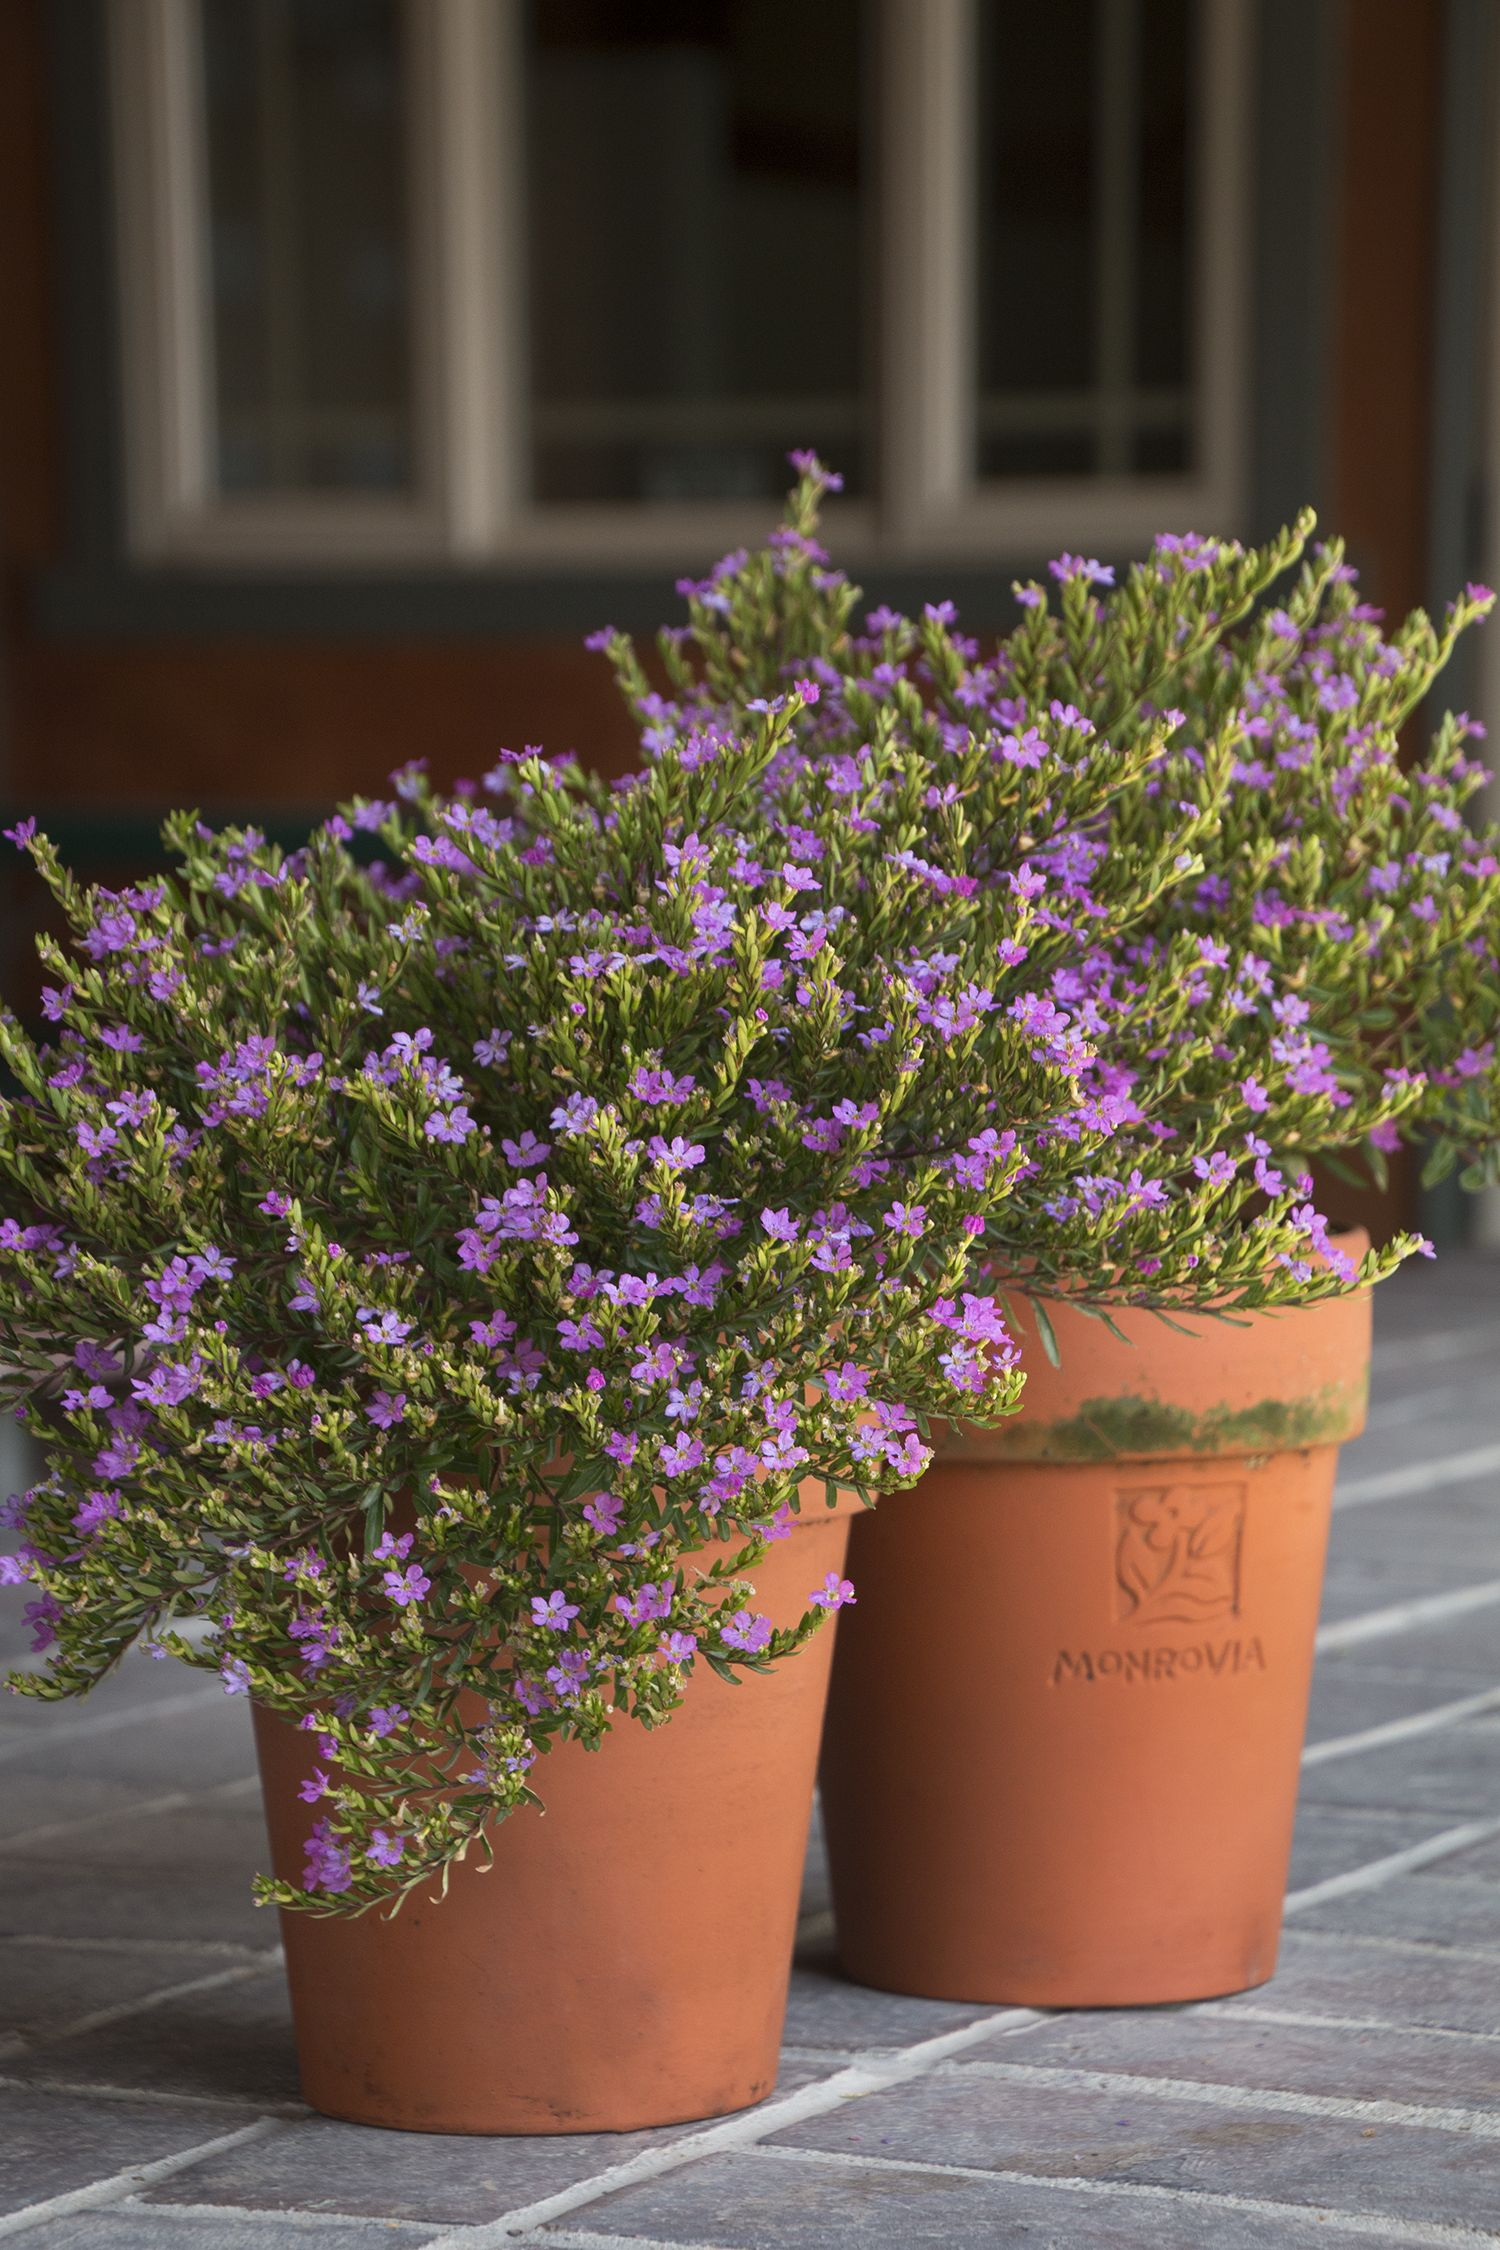 Mexican Heather Monrovia Mexican Heather Heather Plant Cuphea Plant Plants